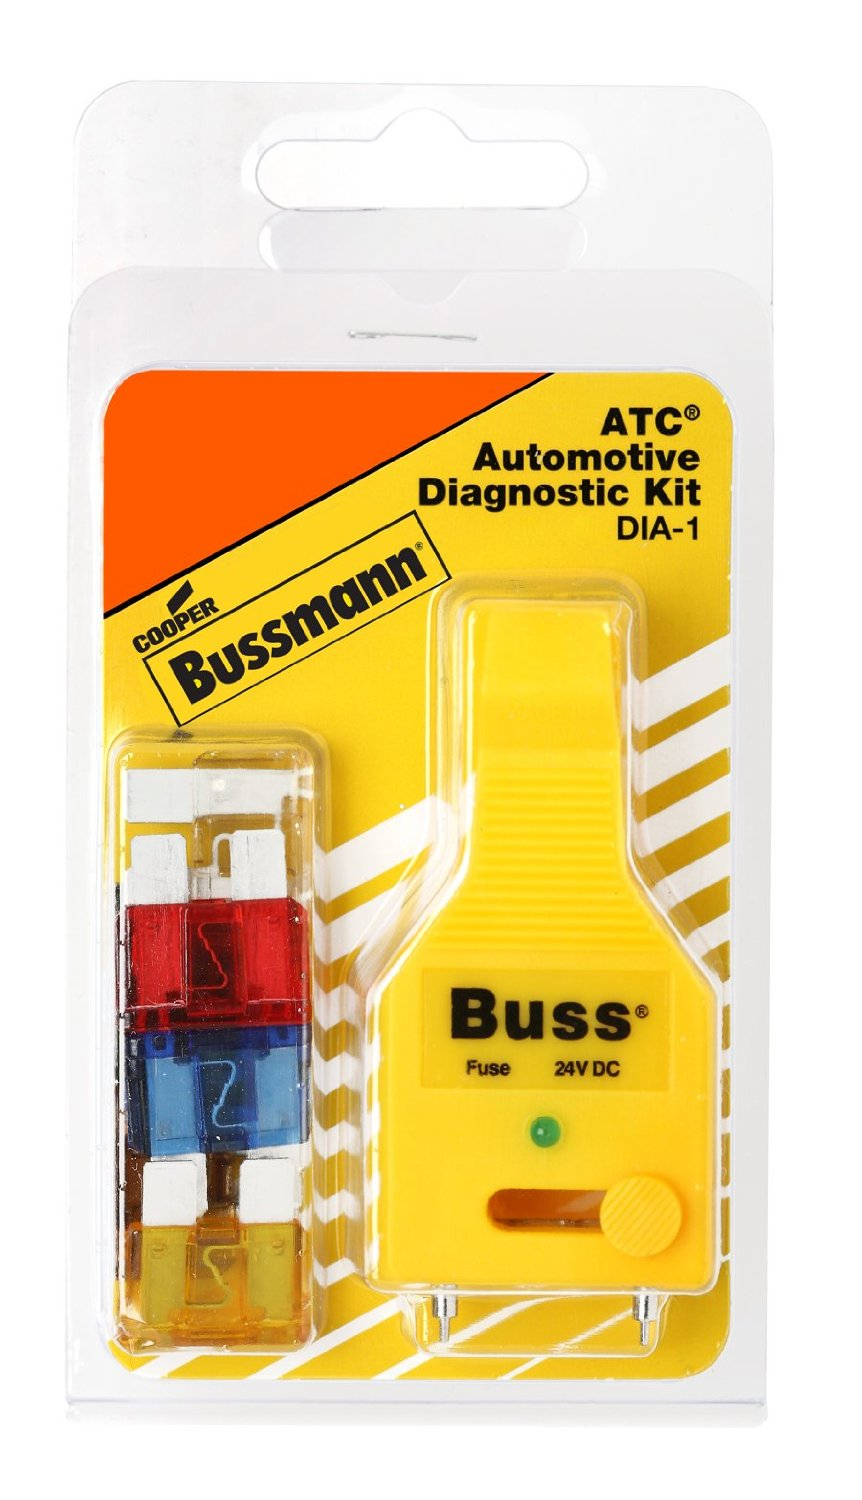 Cooper Bussmann Dia-1 Atc Blade Fuse Automotive Diagnostic Kit, 6-piece